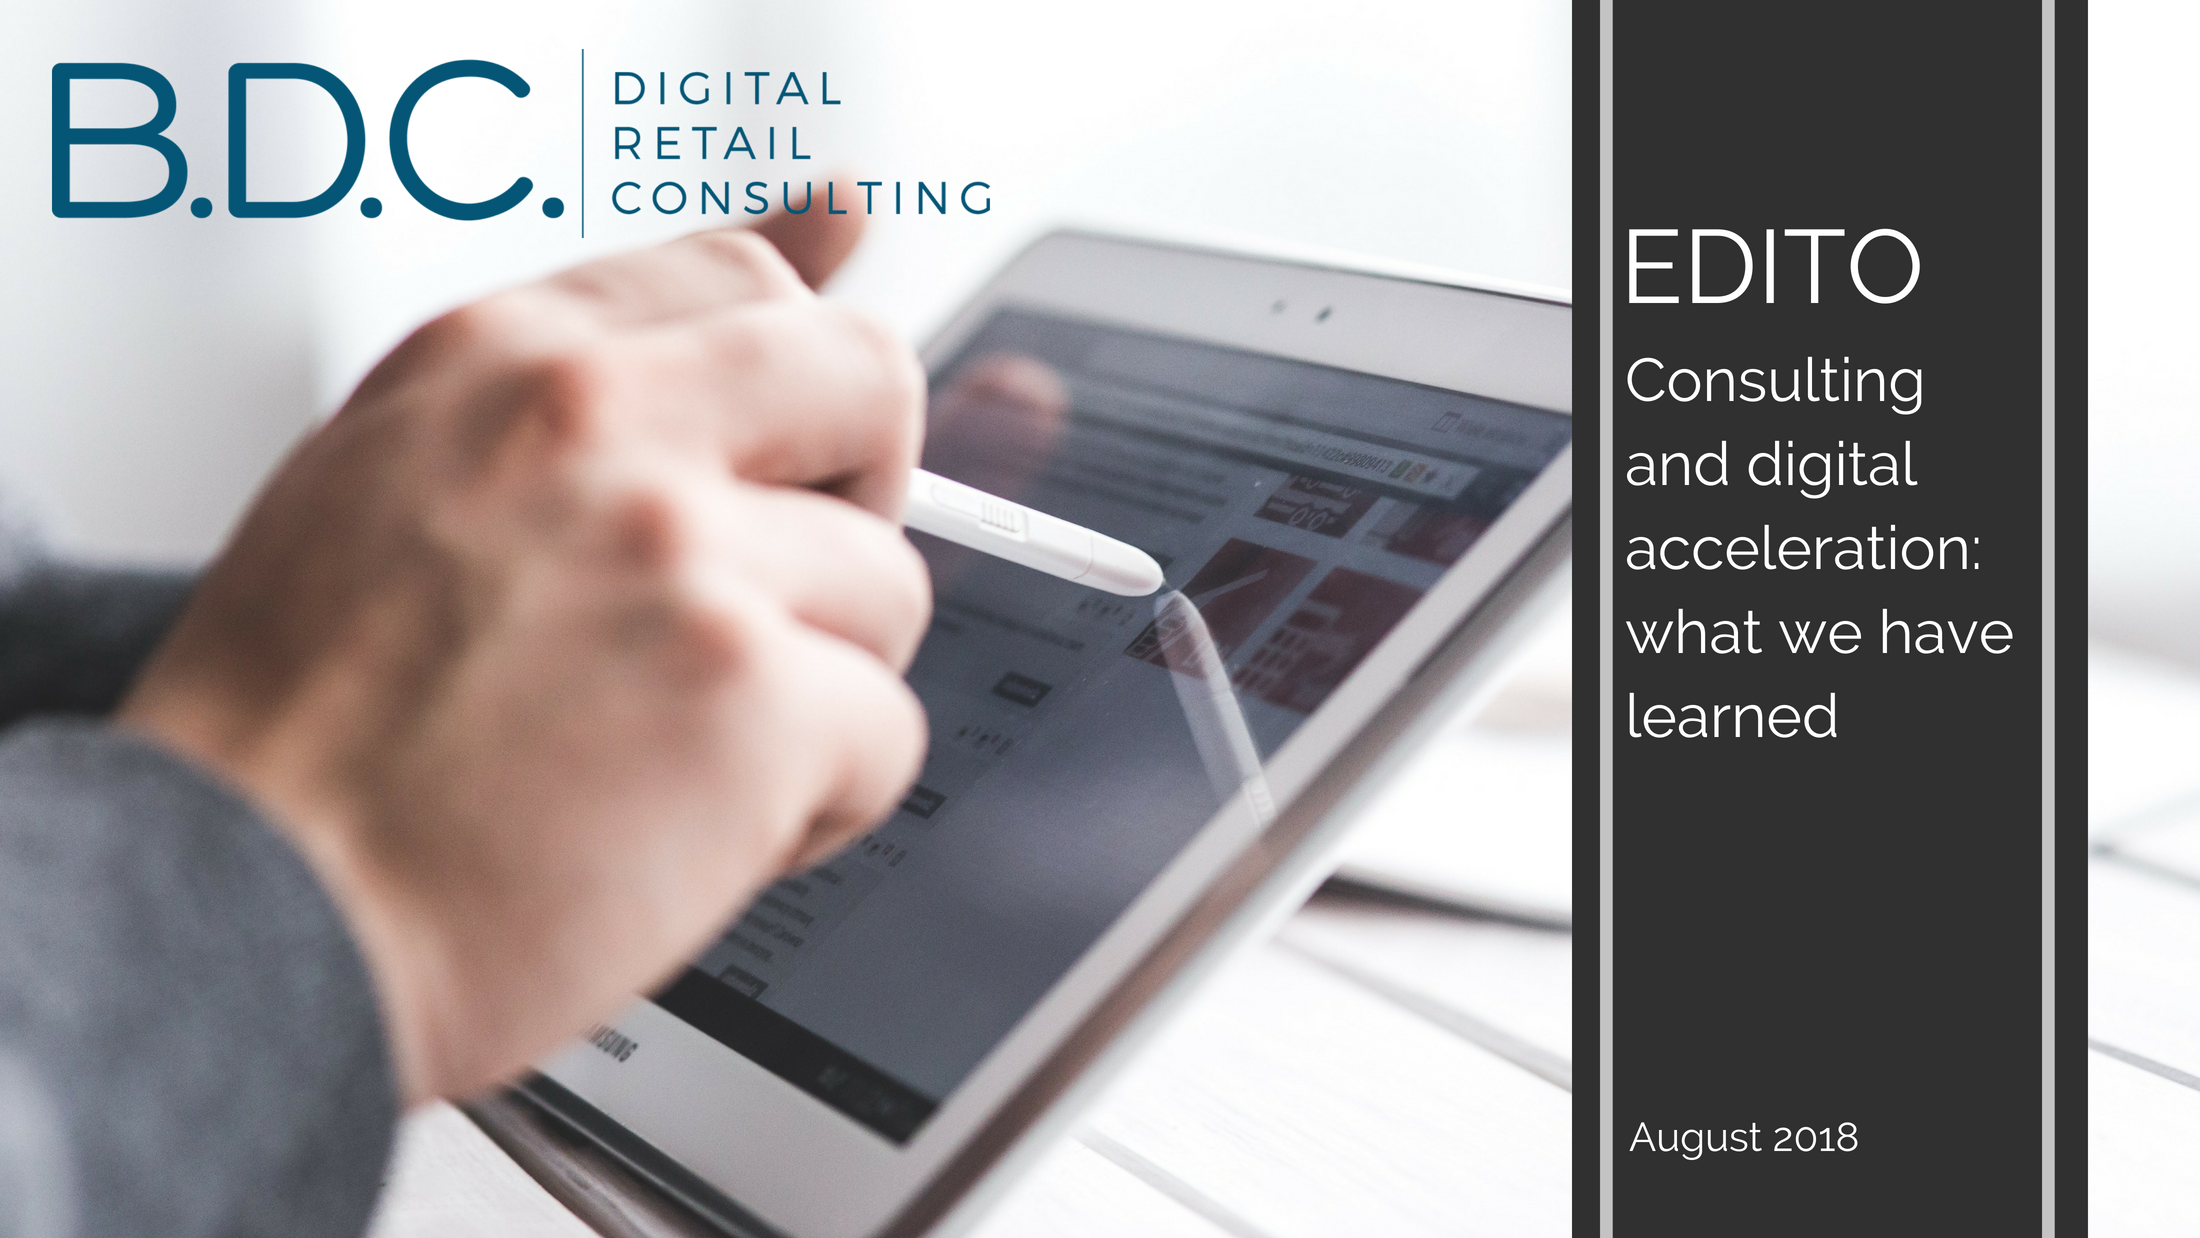 Trends News 7 - Edito: Consulting and digital acceleration, what we have learned